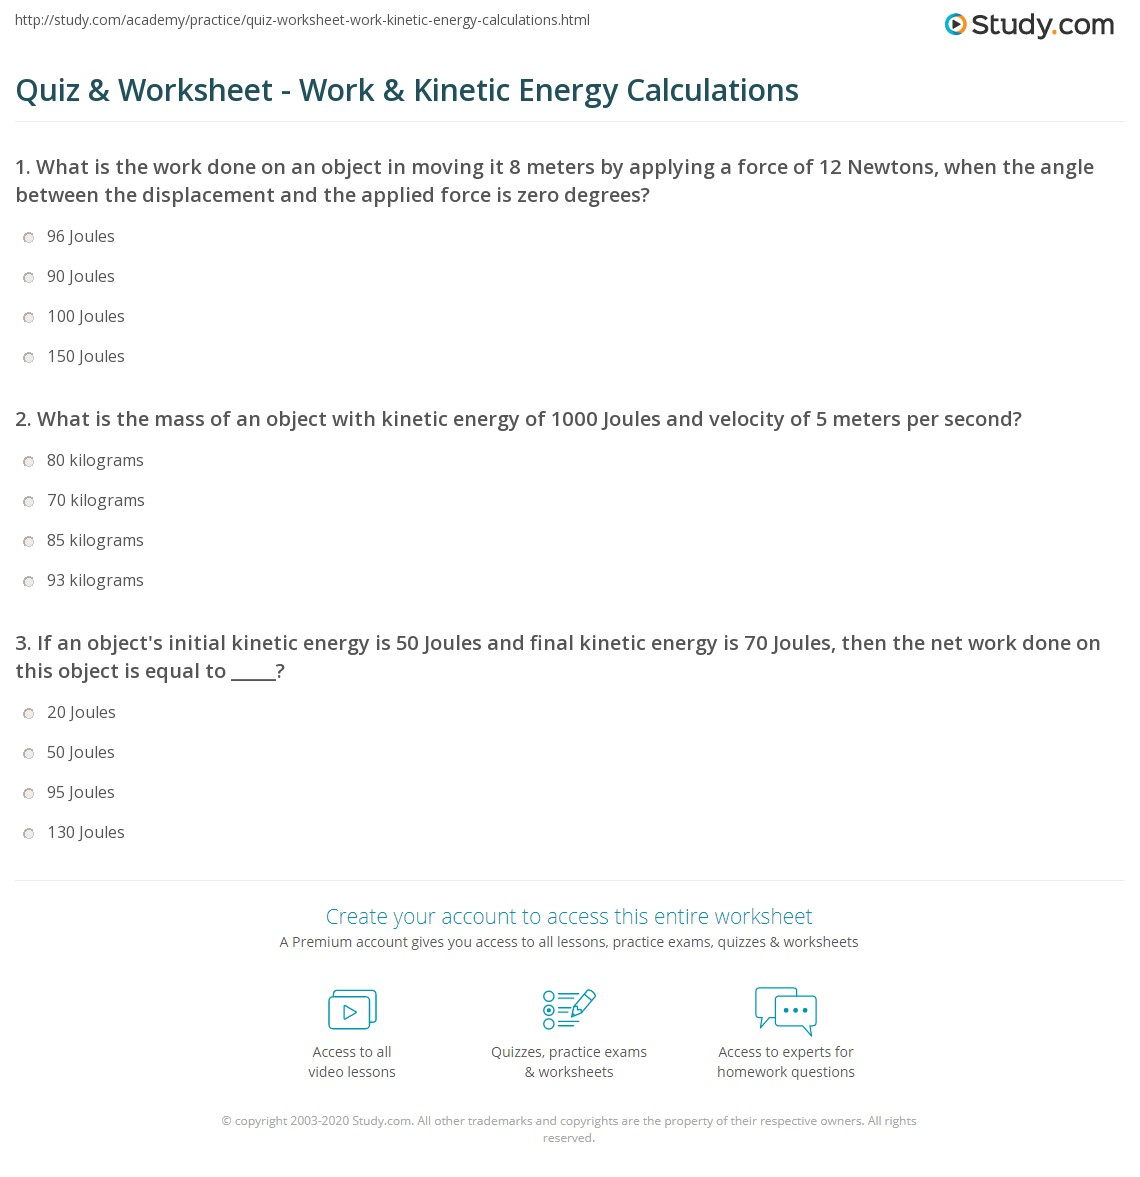 Quiz Worksheet Work Kinetic Energy Calculations Study